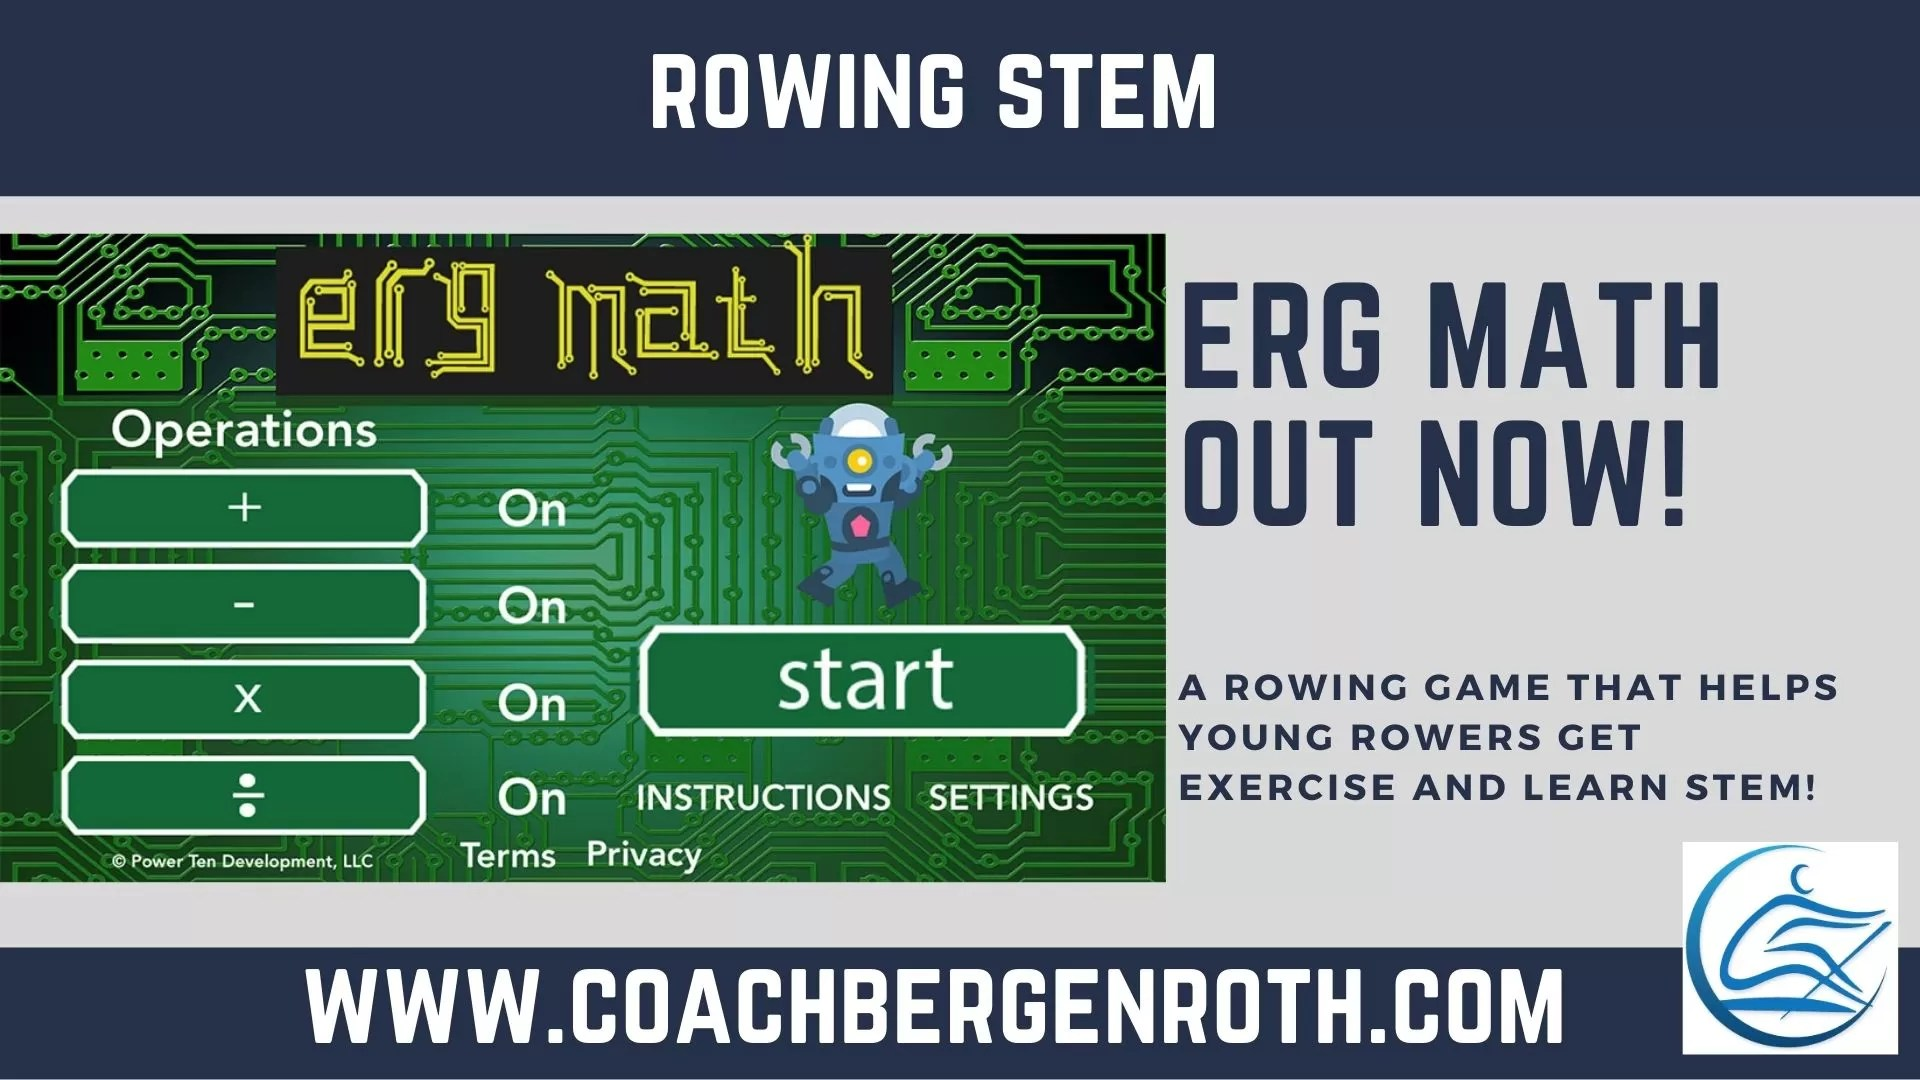 erg math rowing game app